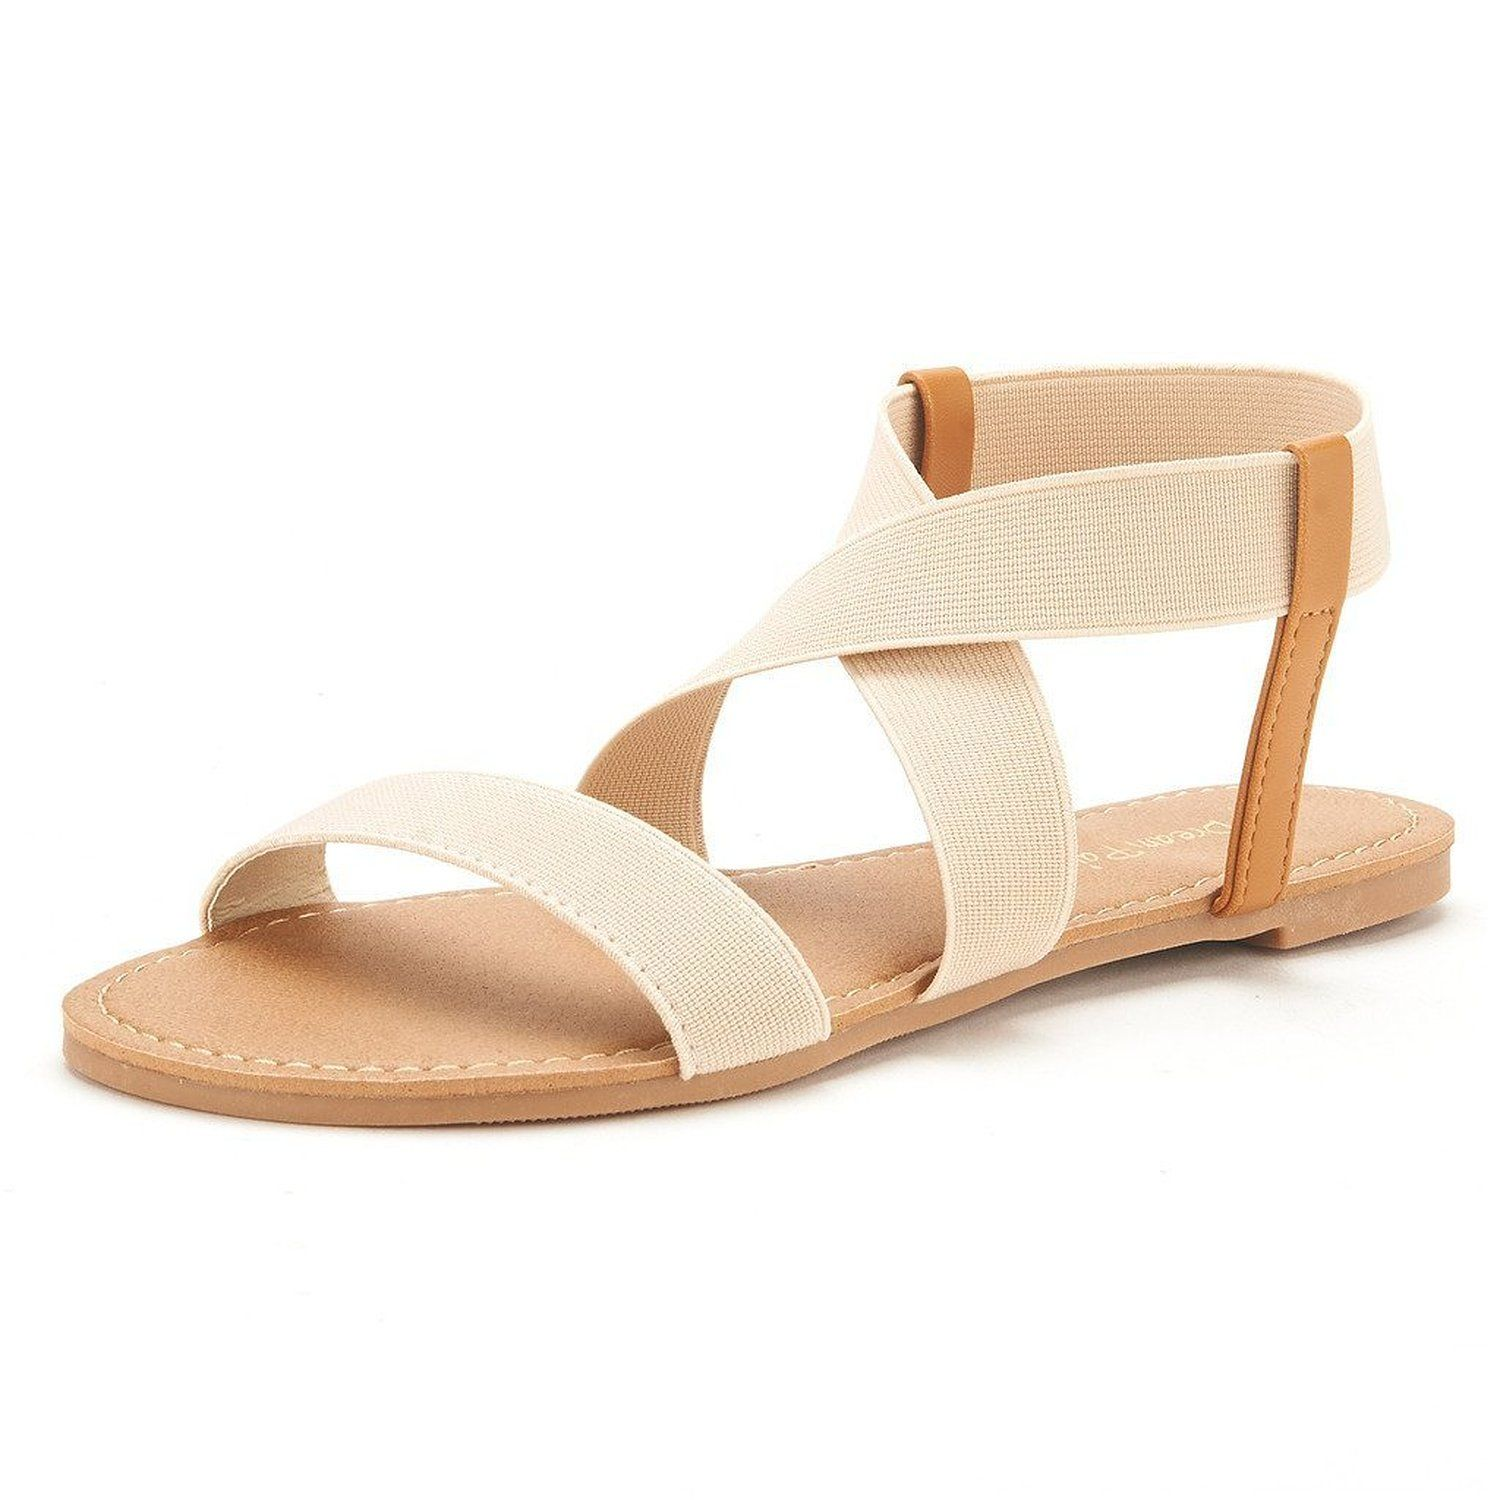 4c4c5475f43c DREAM PAIRS ELASTICA Women Summer Fashion Design Open -Toe Elastic Ankle  Strap Gladiator Flat Sandals    You can get more details here   Gladiator  sandals